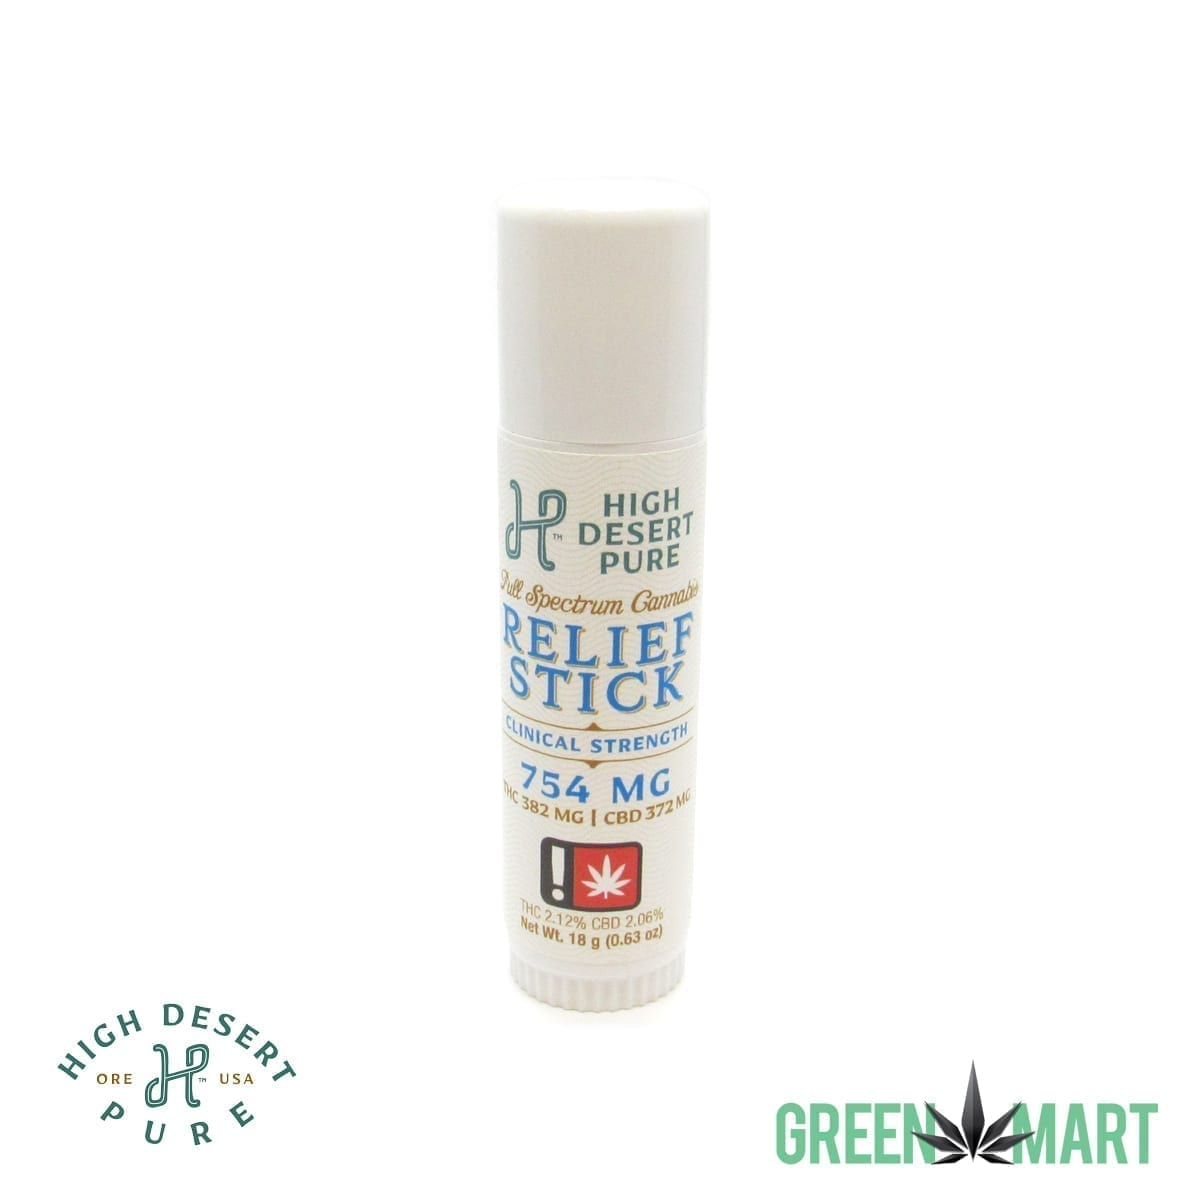 High Desert Pure - Relief Stick